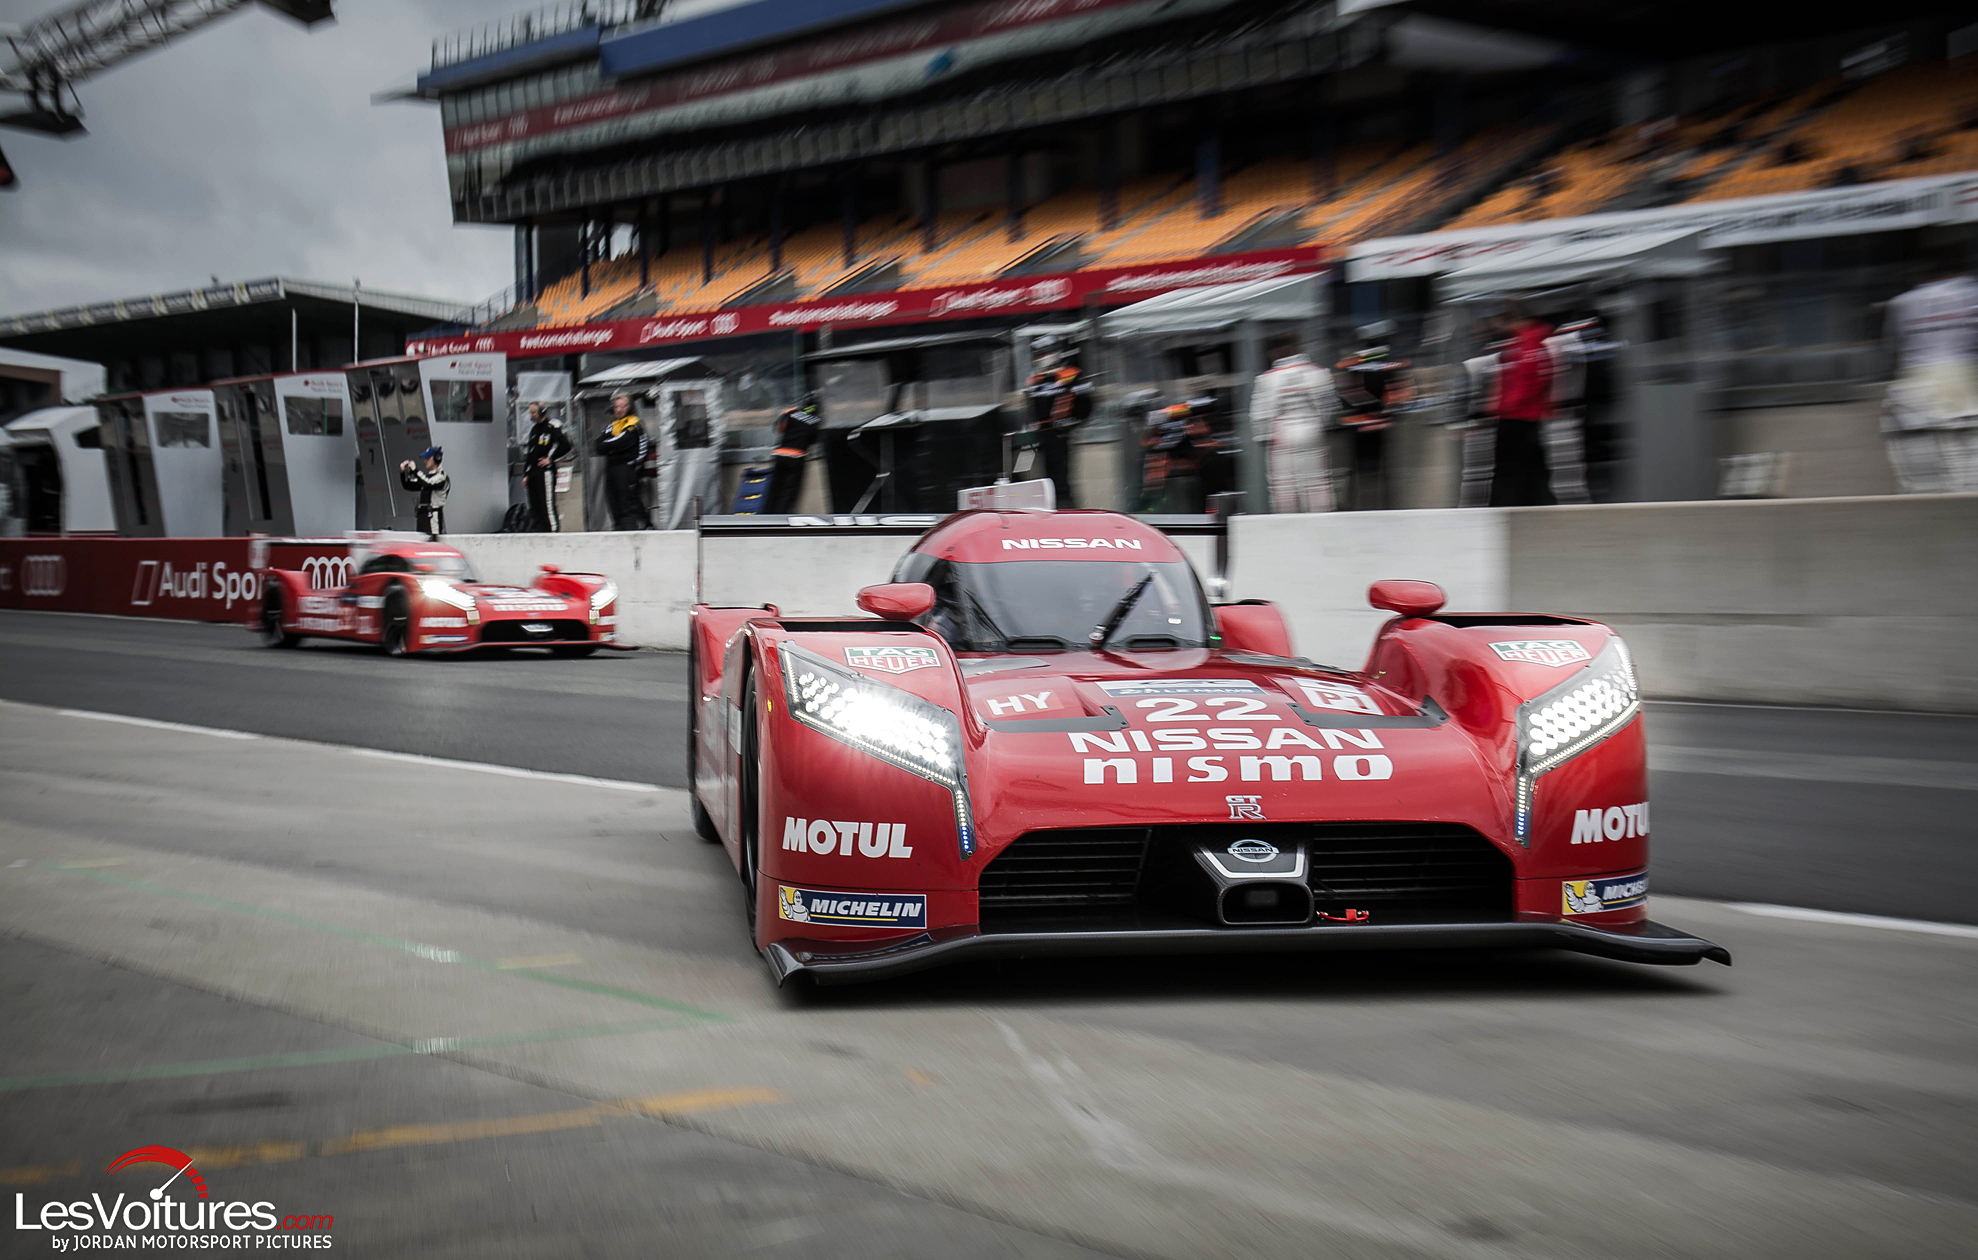 24-Heures-du-Mans-2015-Hours-of-le-test-day-journee-test-nissan-lm-gt-r-nismo-stand